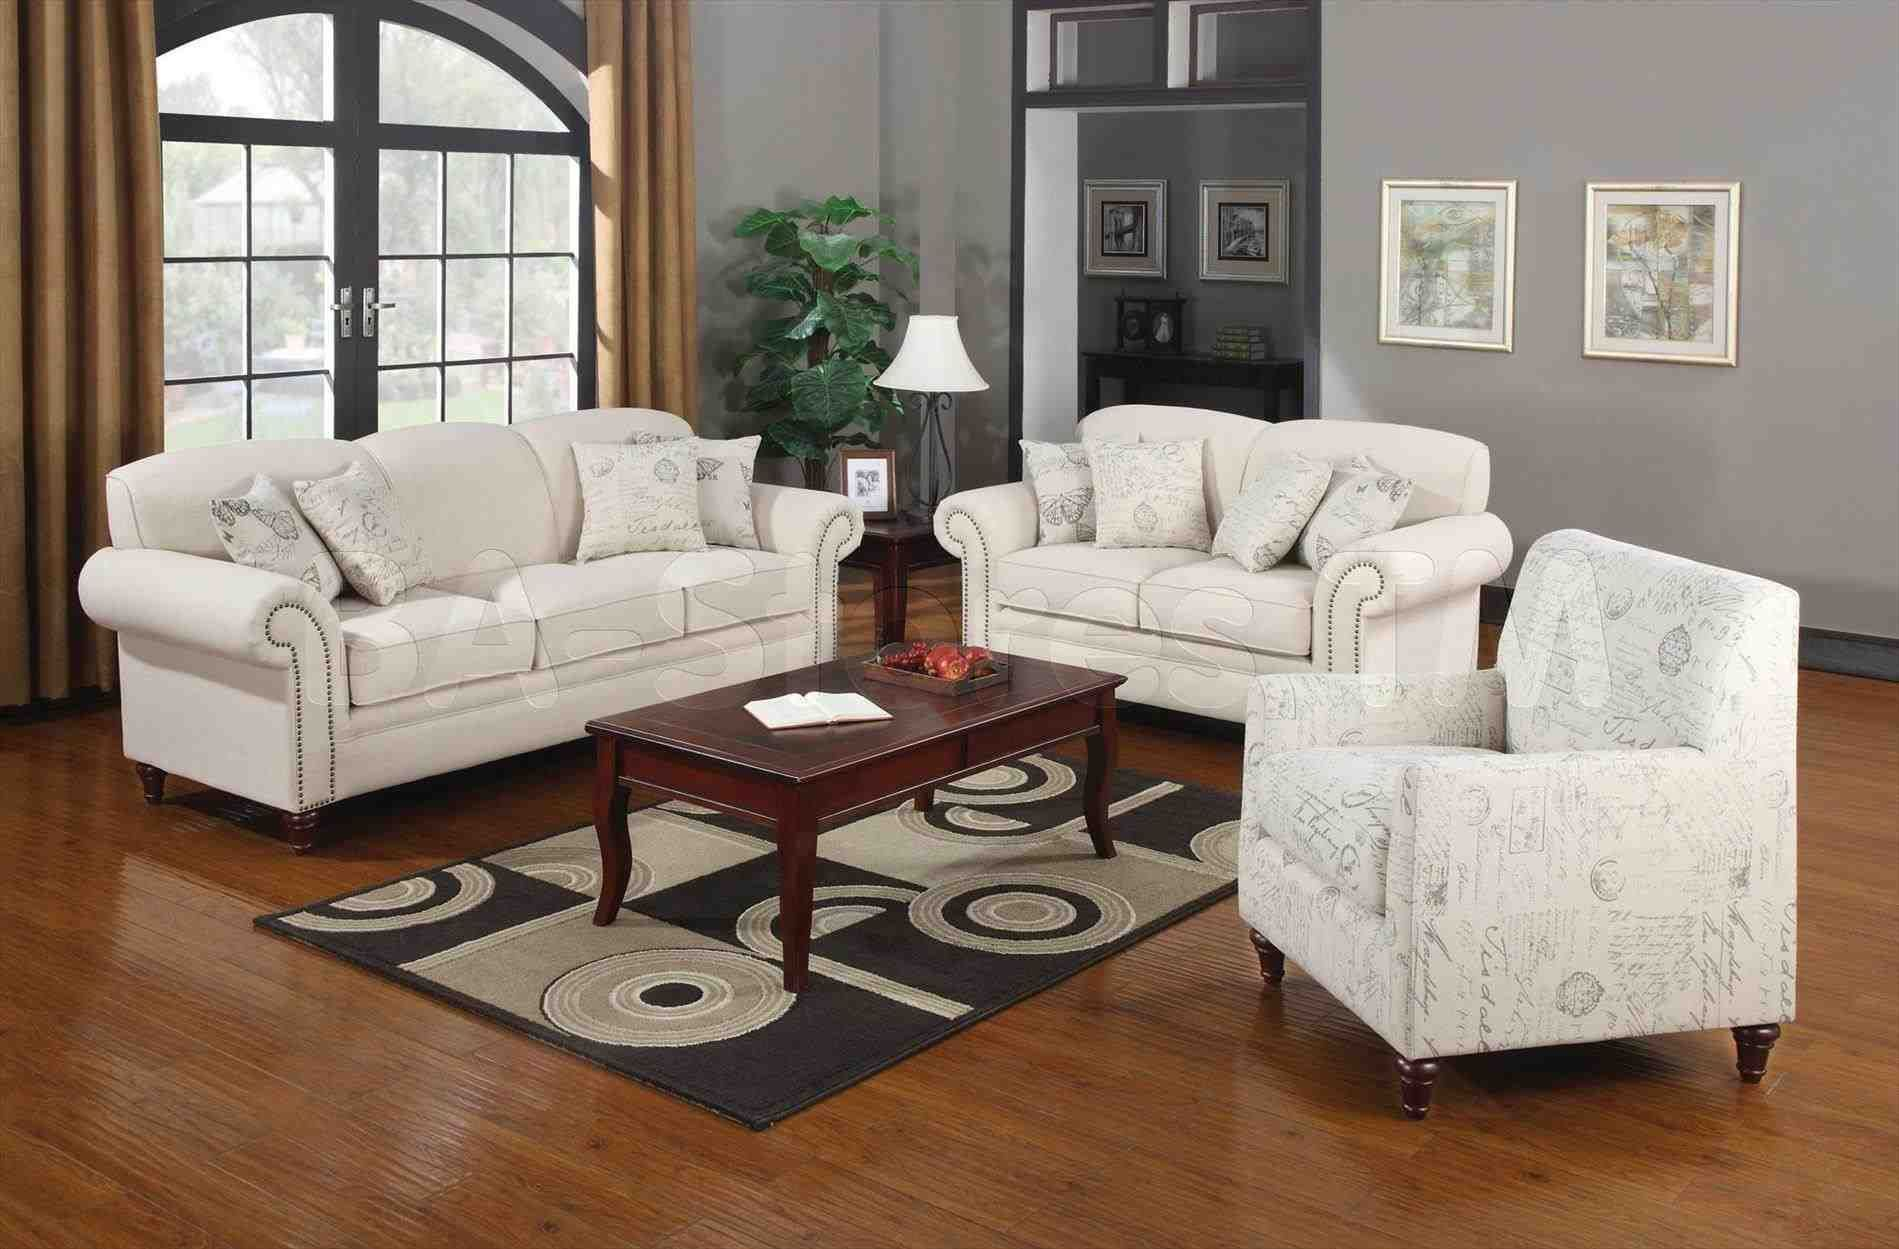 Cheap Living Room Furniture Sets For Sale Cheap Living Room Sets Living Room Sets Furniture Cheap Living Room Furniture